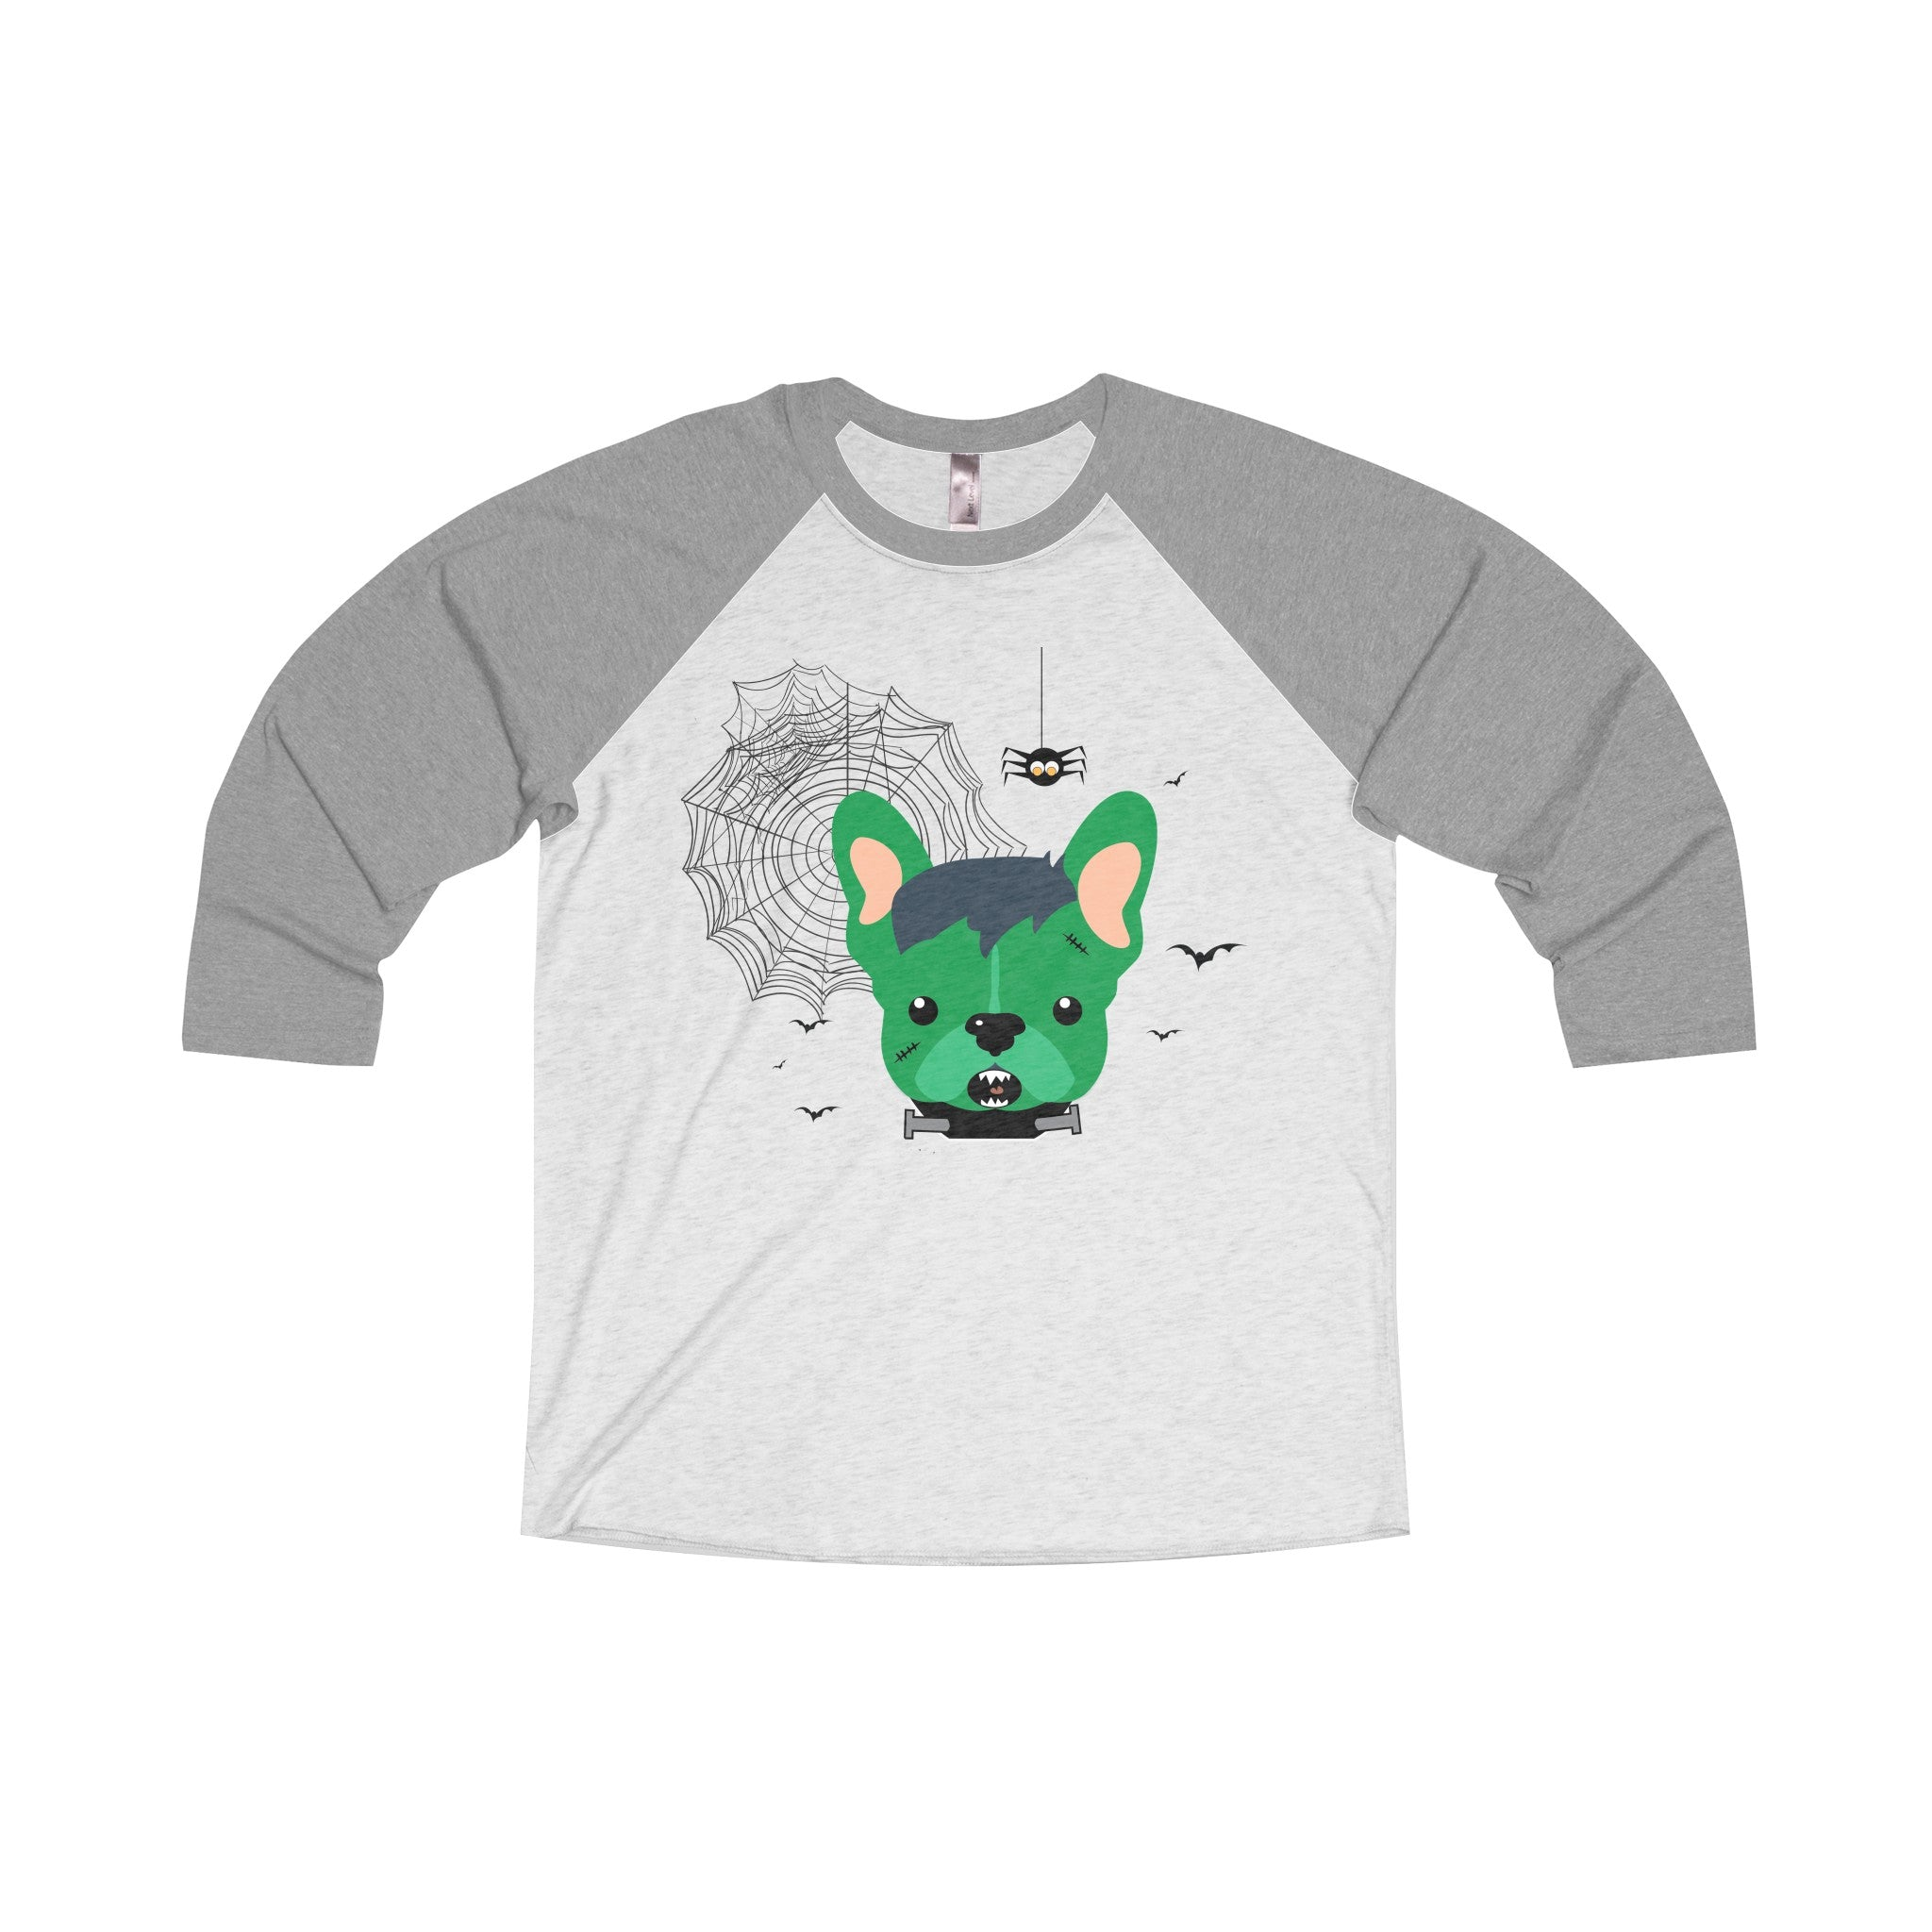 Franken-Frenchie Raglan Tee - Allthingsfrenchie LLC